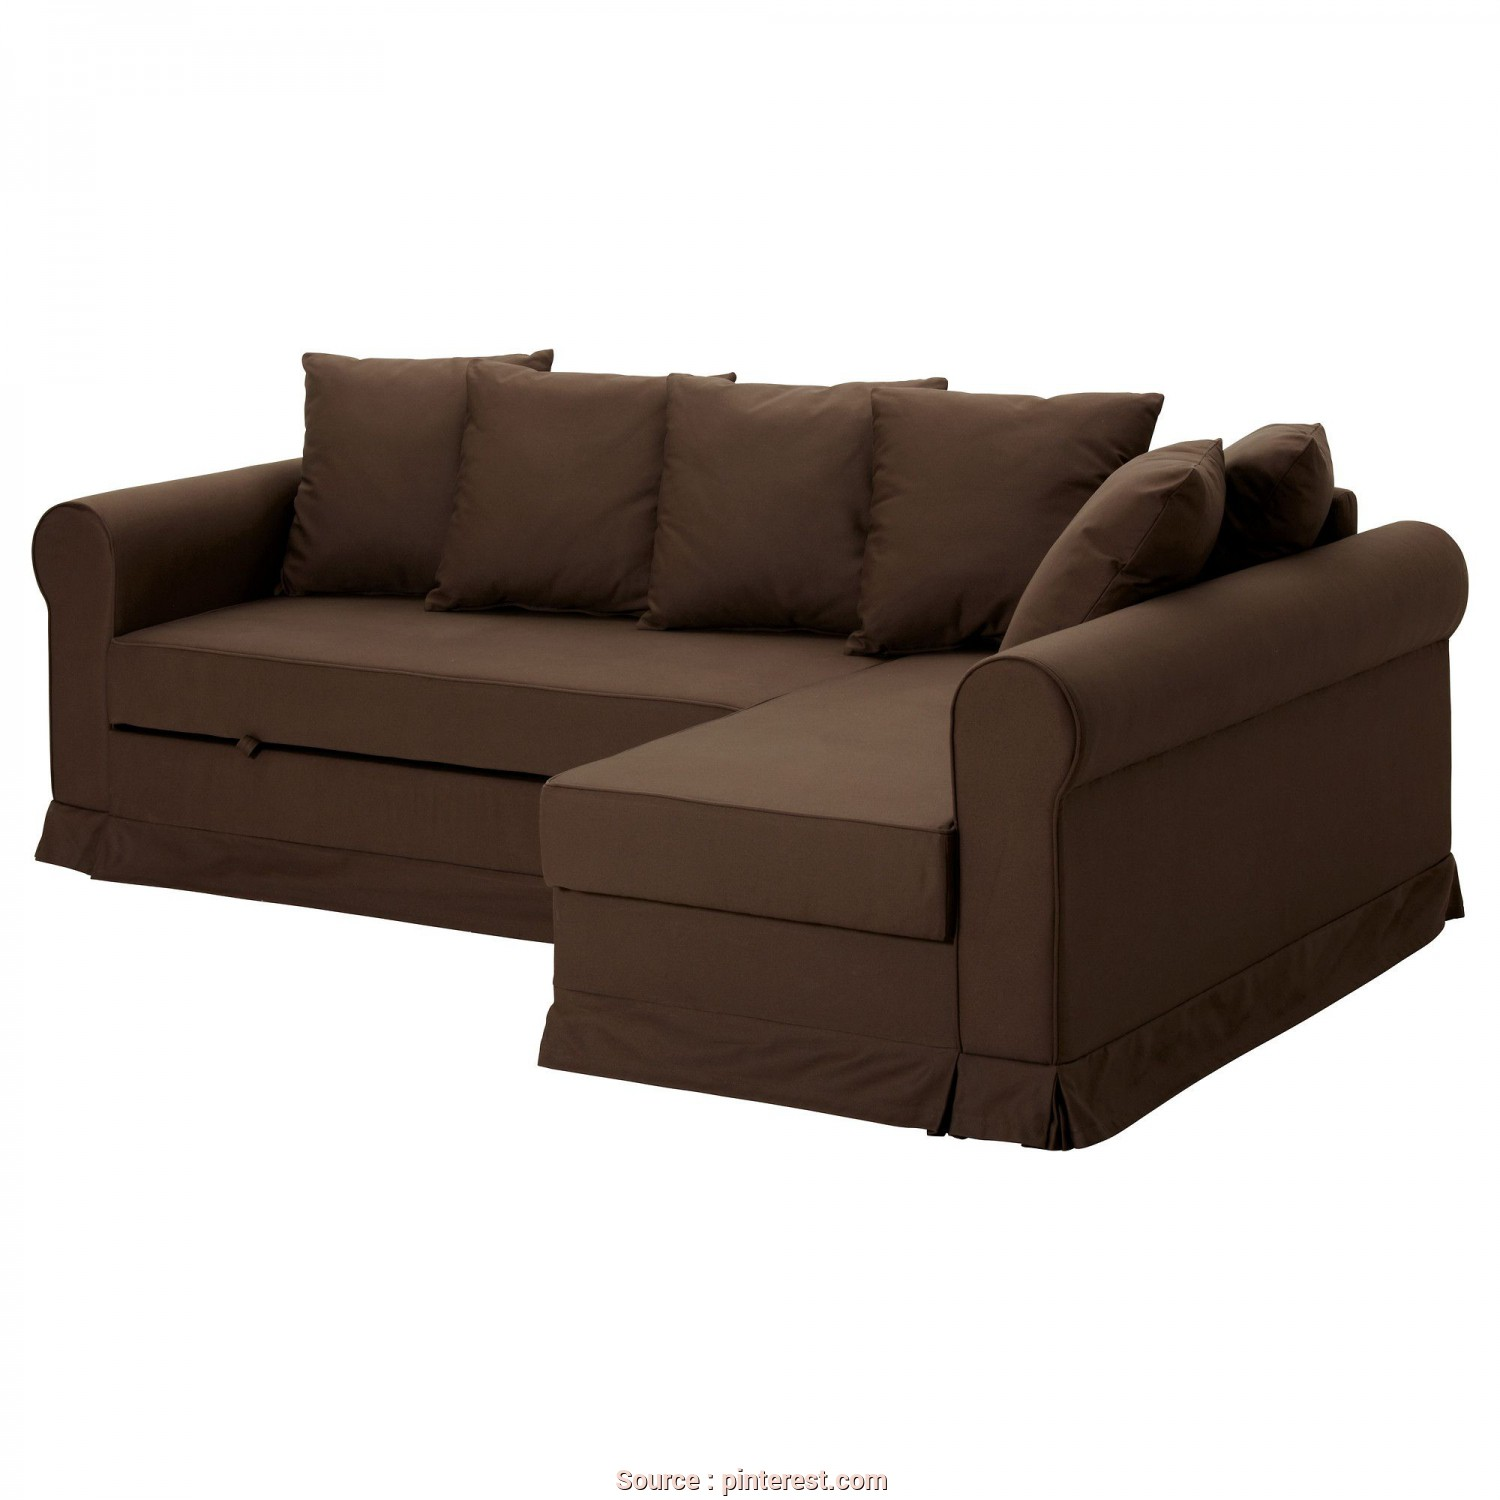 Ikea Divano Moheda, Divertente MOHEDA Corner Sofa-Bed, IKEA Lazyboy Needs To Make, The Pull, Opens, Length Of, Couch Instead Of, In, Middle Of, Room...Def Need A